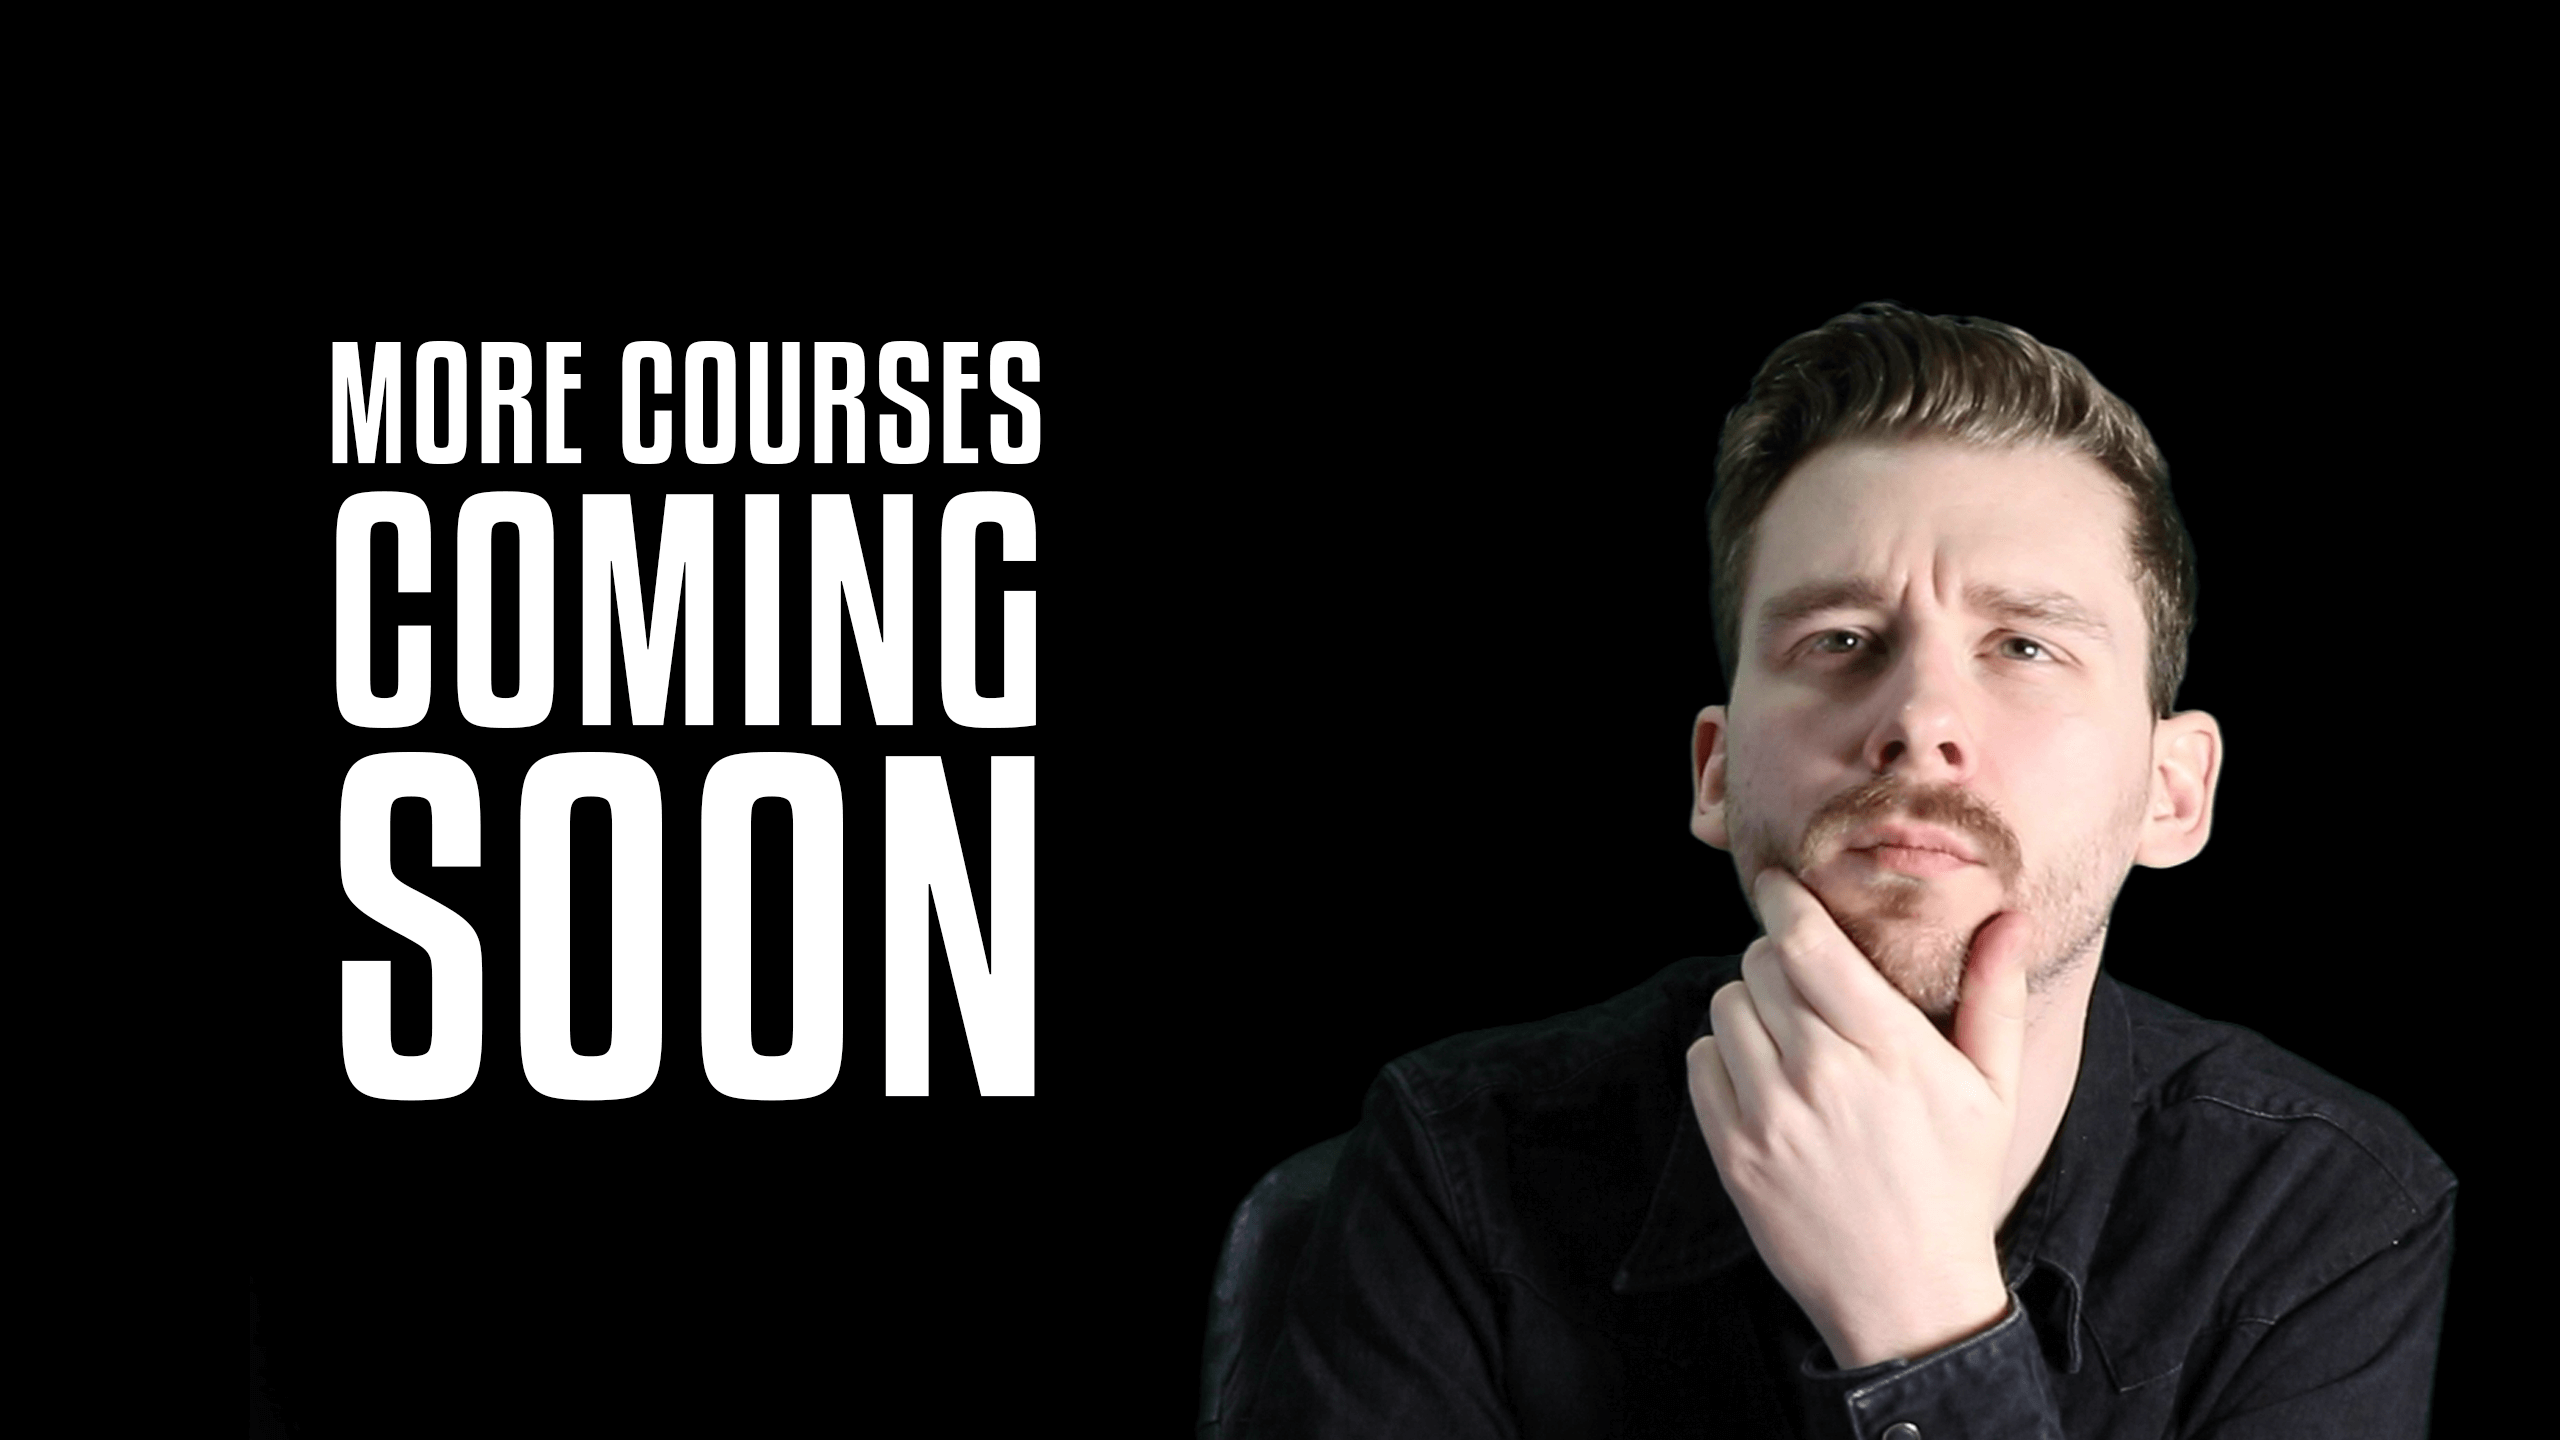 More courses coming soon!